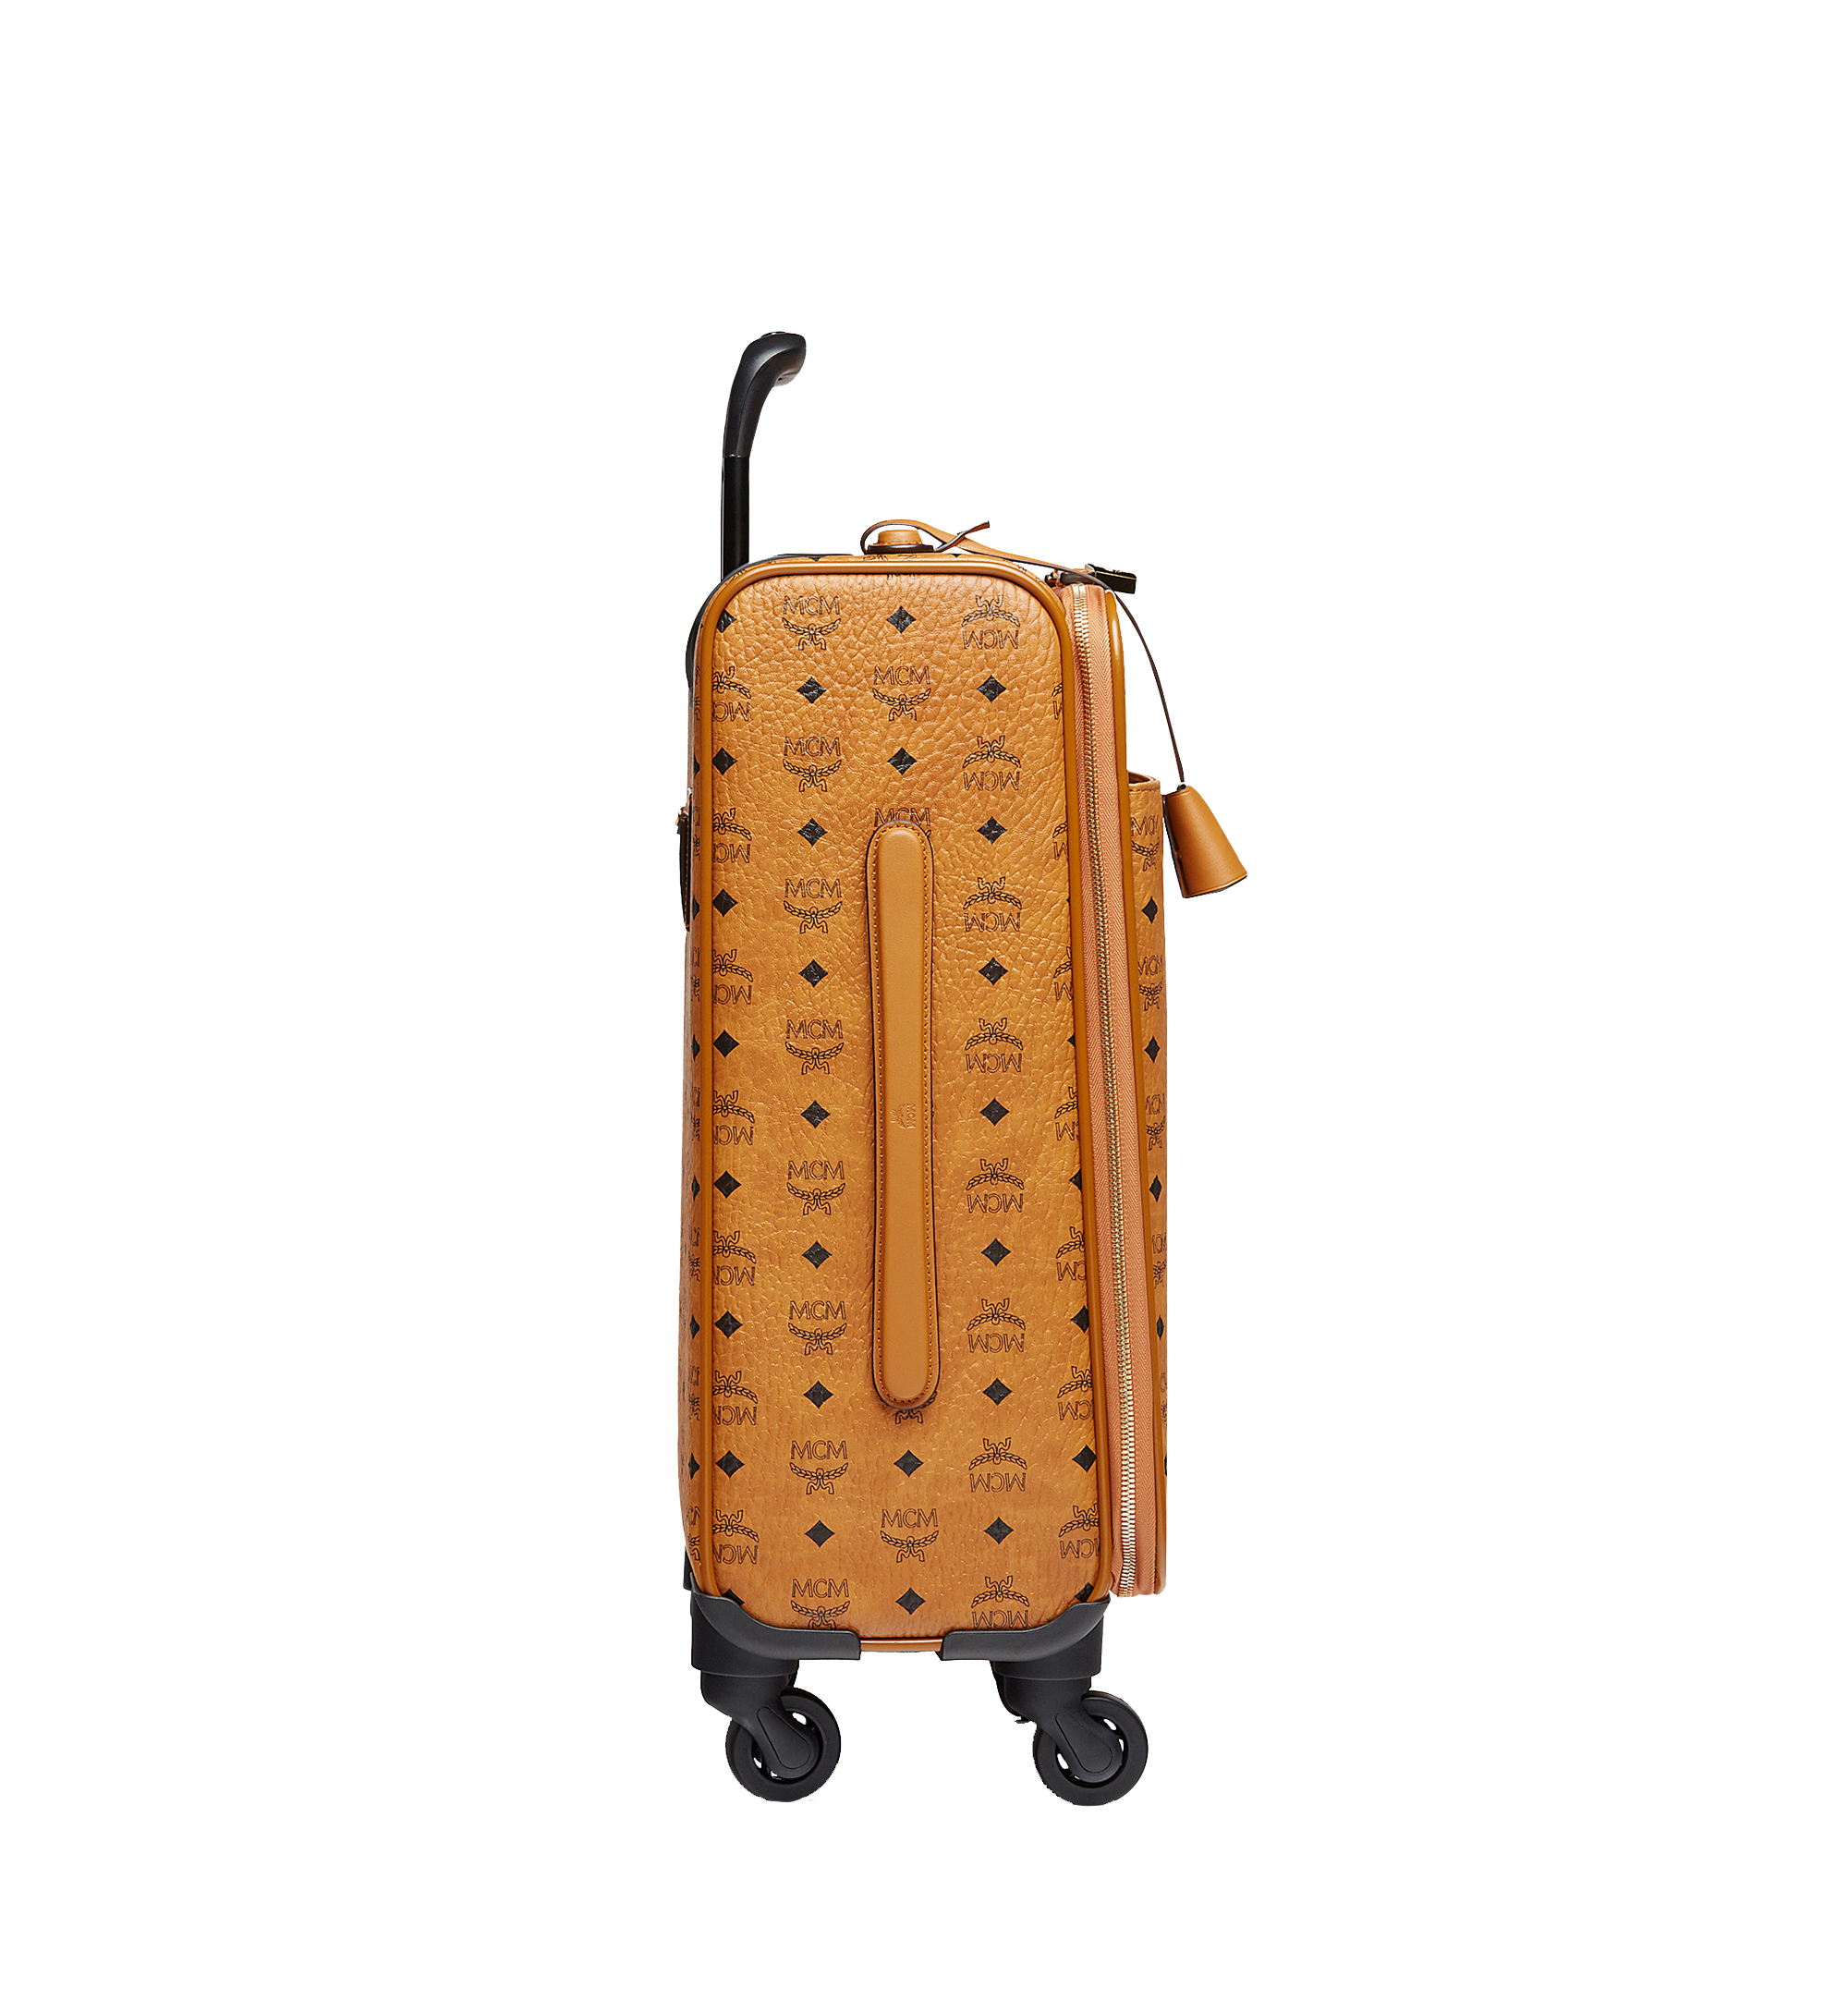 MCM Sac à roulettes pour cabine Traveler en Visetos Cognac MUV8SVY04CO001 Plus de photos 2